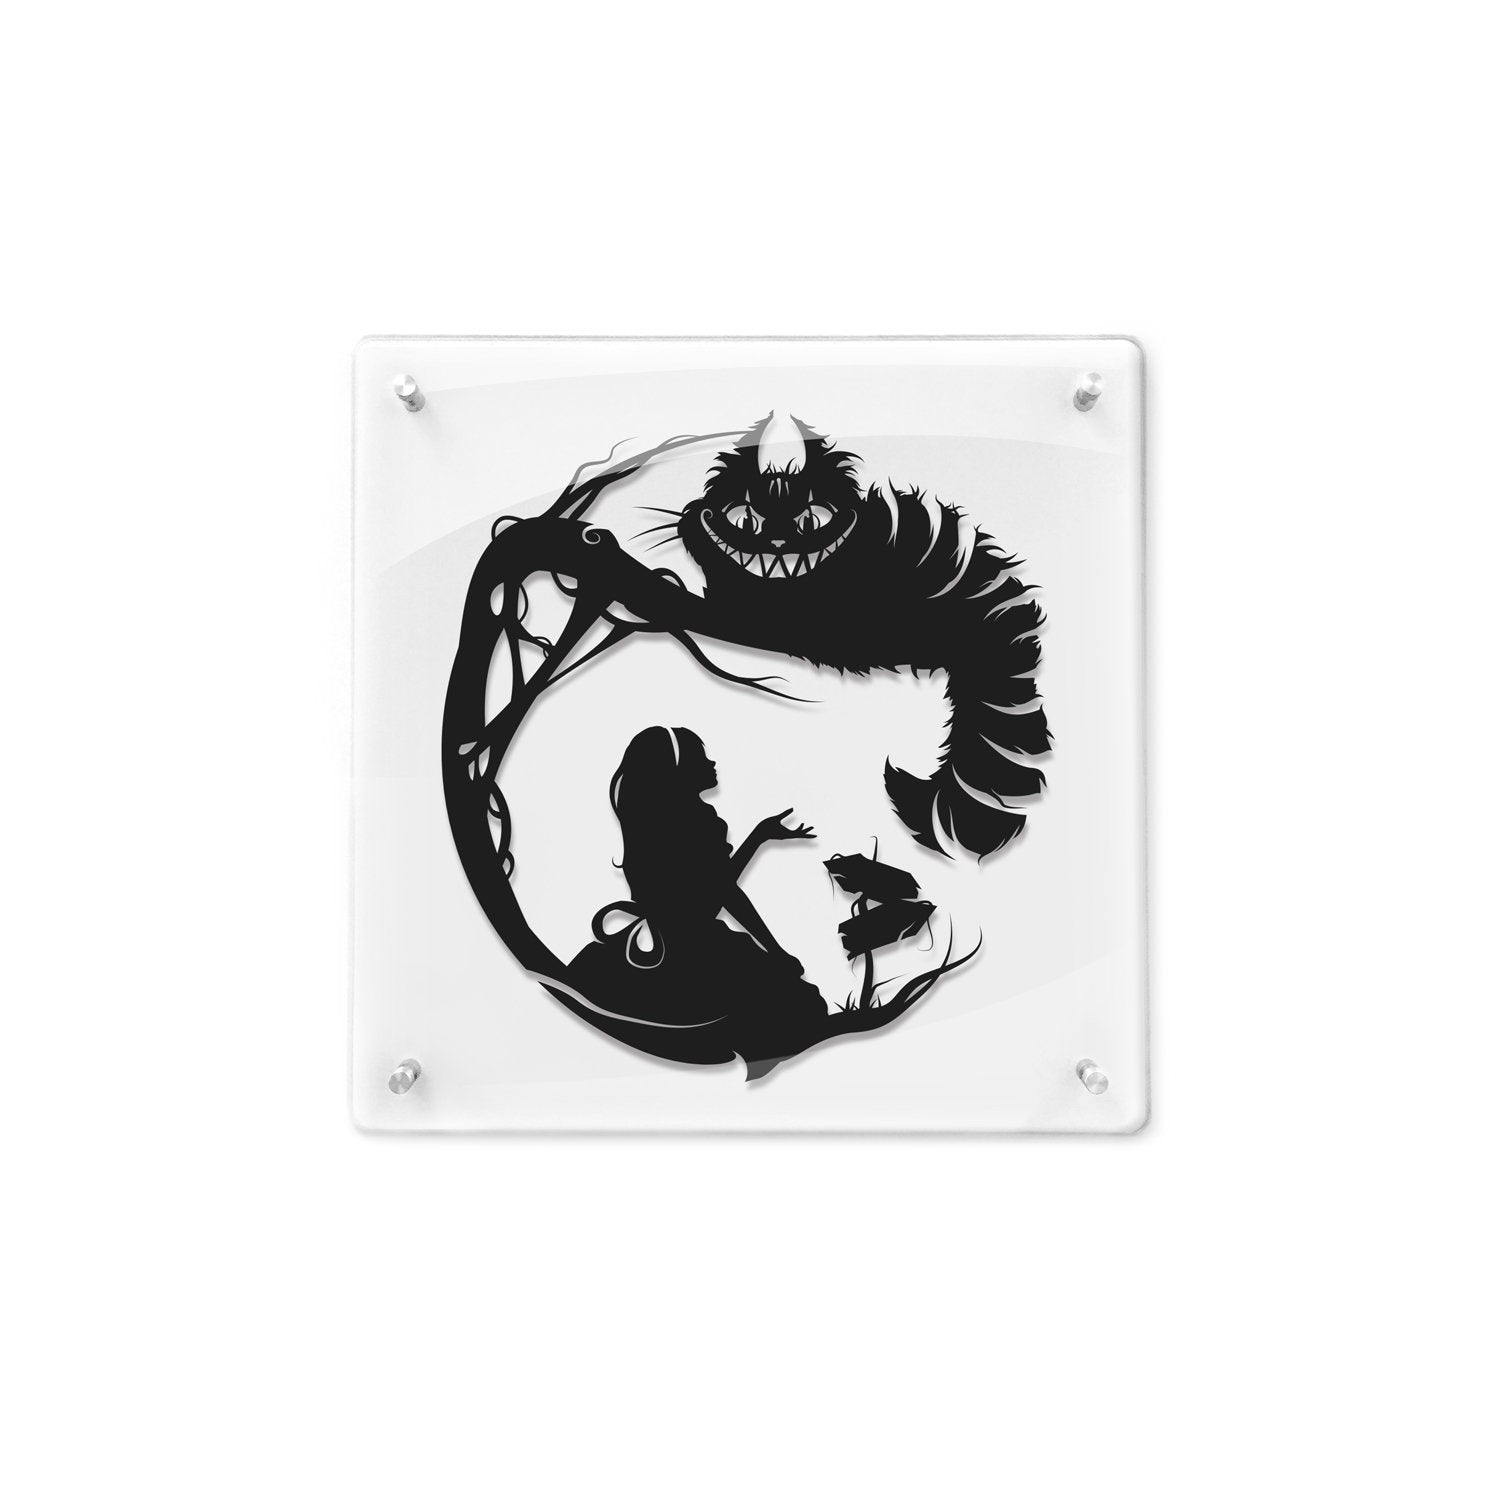 FRAMED Alice in Wonderland Cheshire Cat Storybook Fairy Tale Papercut We're All Mad Here Lewis Carroll Fantasy Art Geek Gift Disney Art